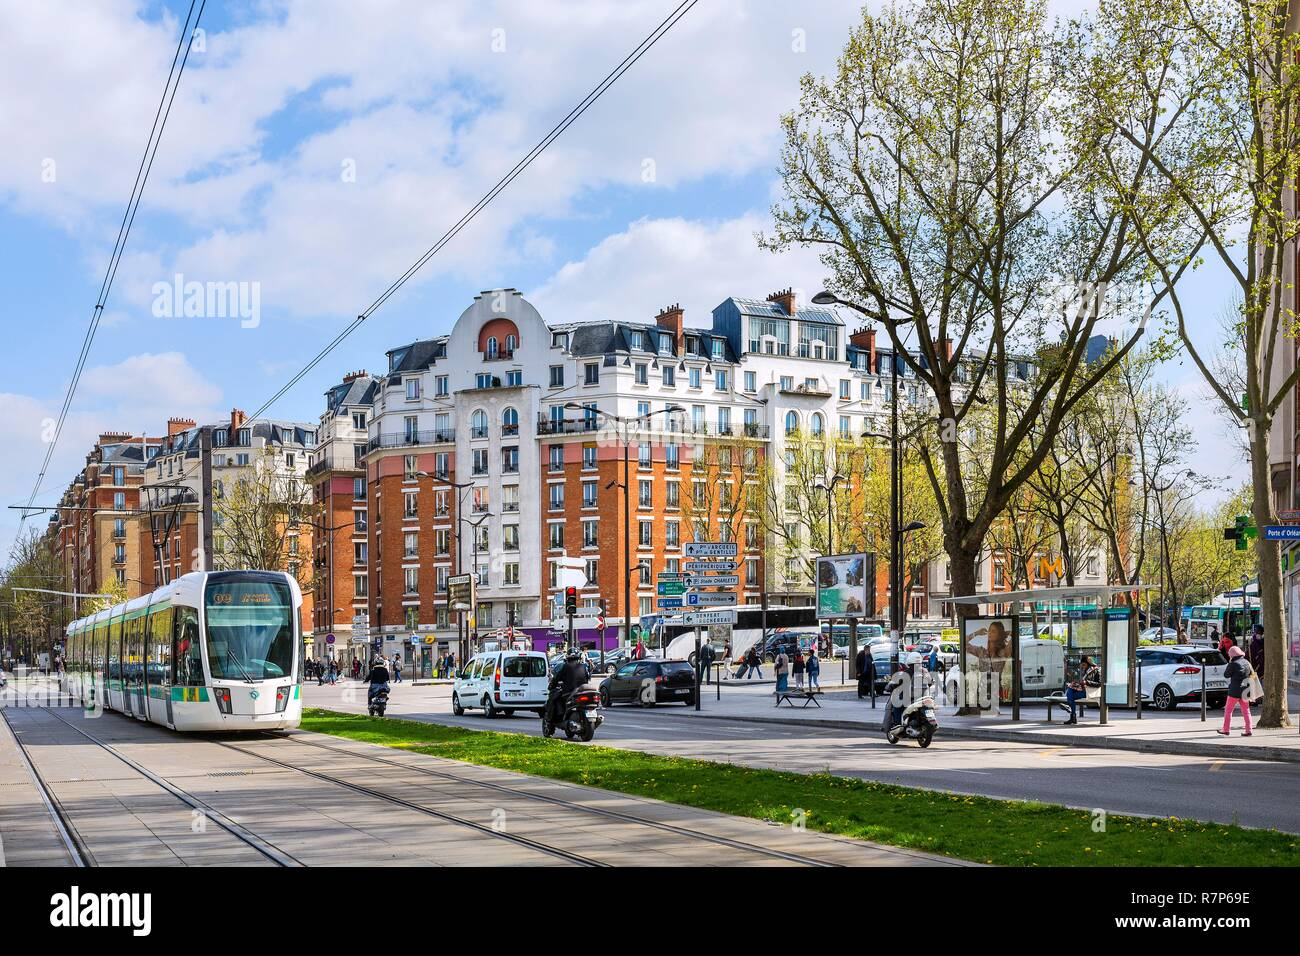 Le Meilleur Paris Tramway Stock Photos Paris Tramway Stock Images Ce Mois Ci